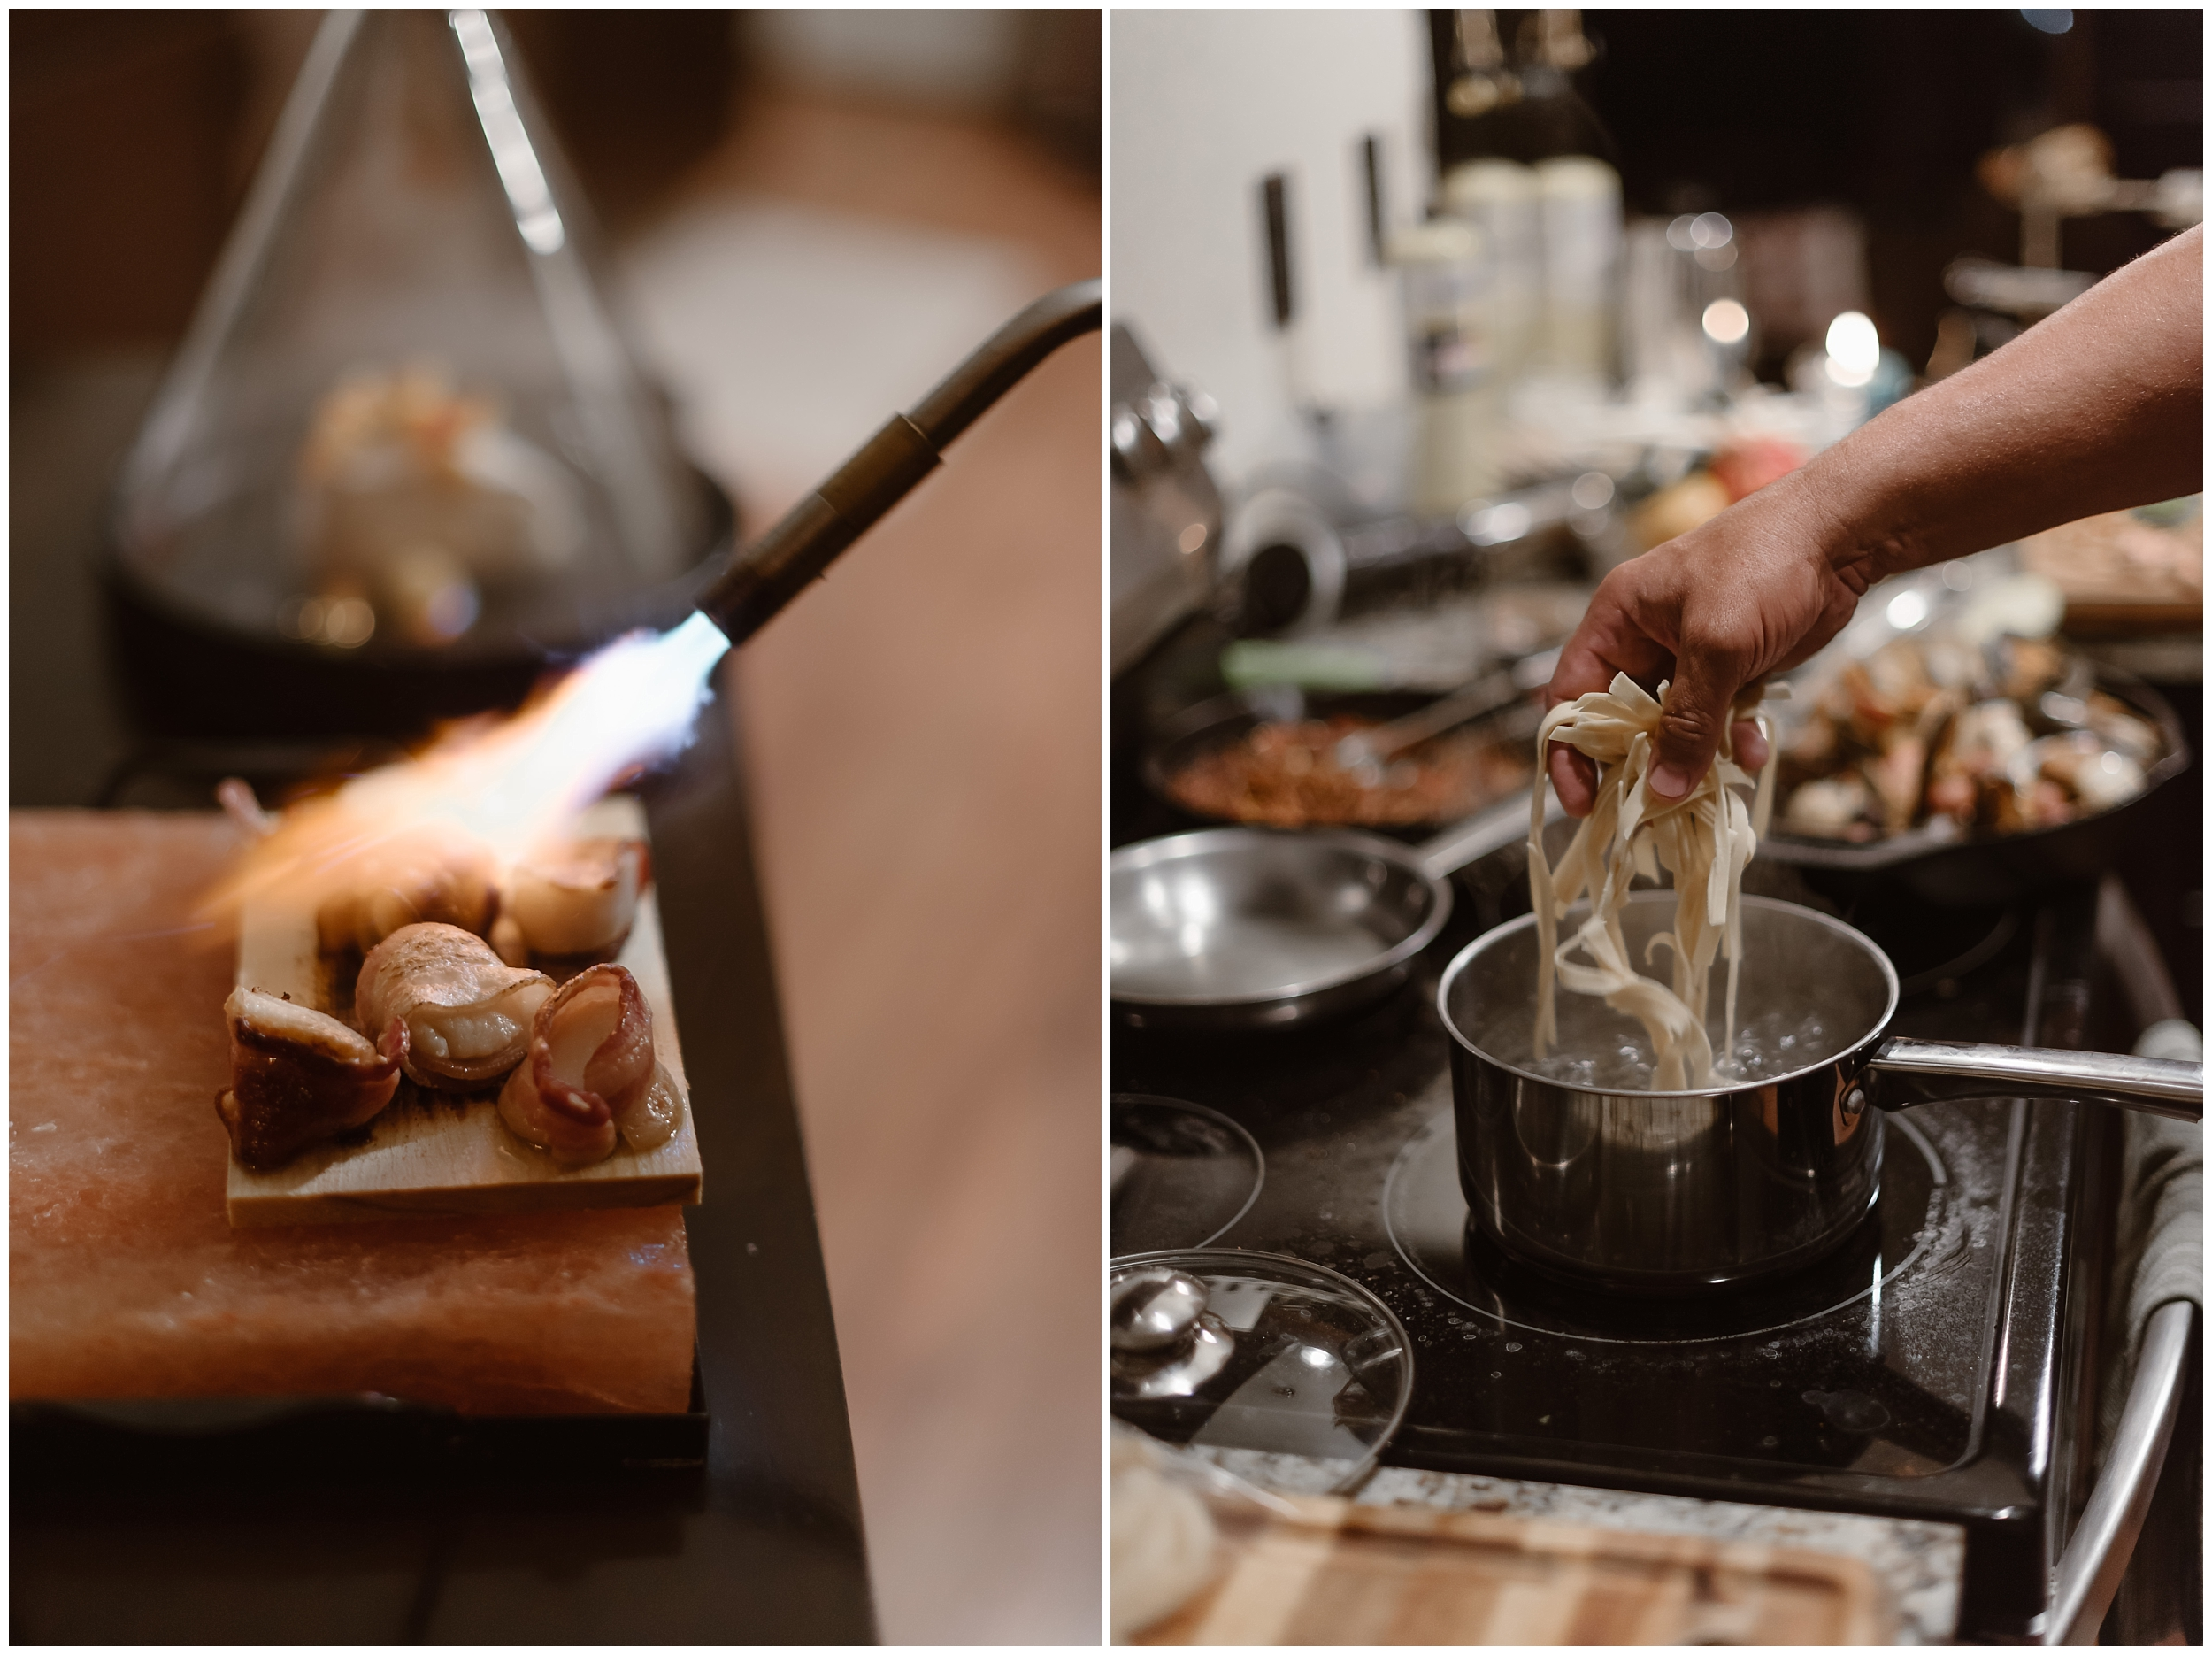 In the side-by-image, food is being prepared by private chefs for Katie and Logan's secluded reception after elopement at their Airbnb in Ouray, Colorado. In the adventure elopement photo on the right, the chef drops noodles into a boiling pot of water. In the photo on the left, a chef uses a blowtorch to scorch bacon wrapped mussels.